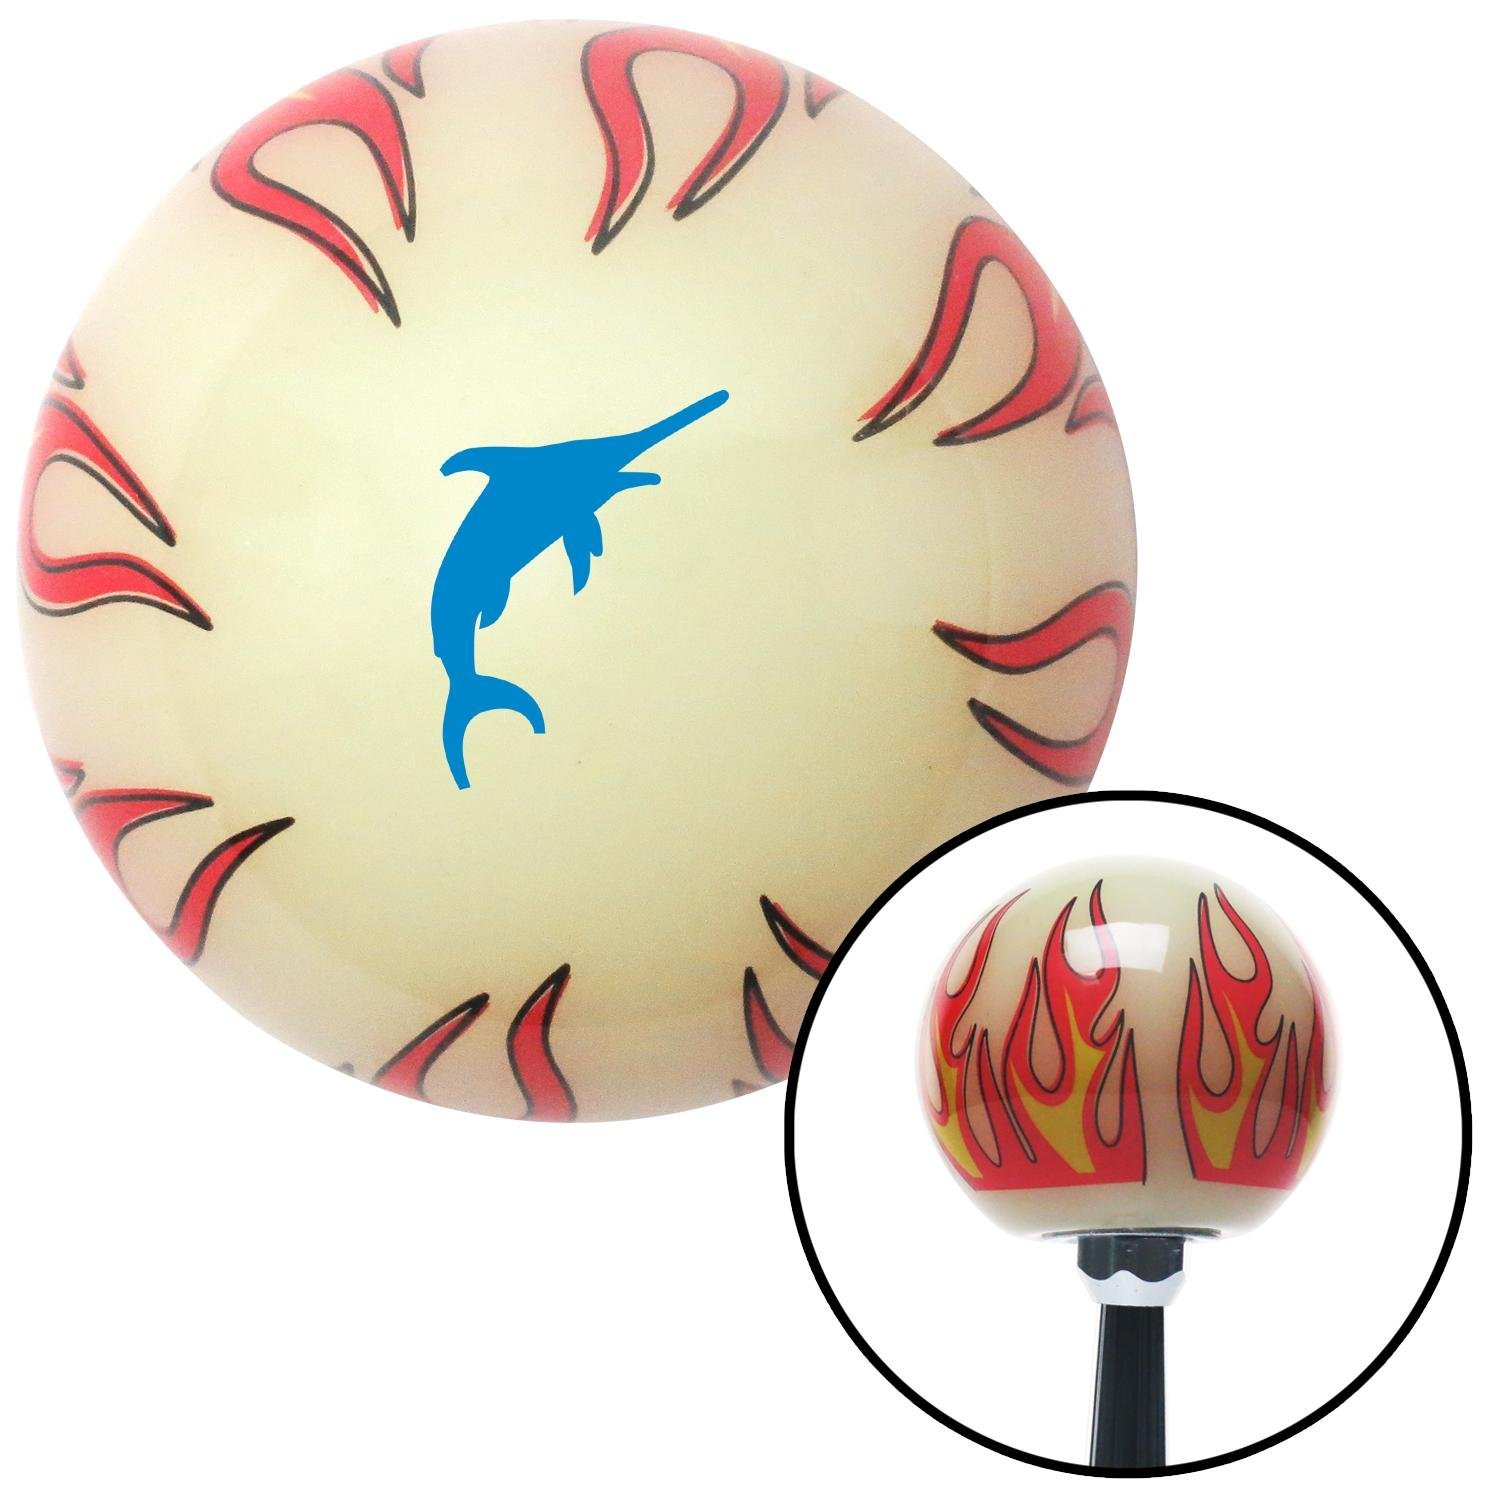 American Shifter 292765 Shift Knob Blue Marlin Ivory Flame with M16 x 1.5 Insert